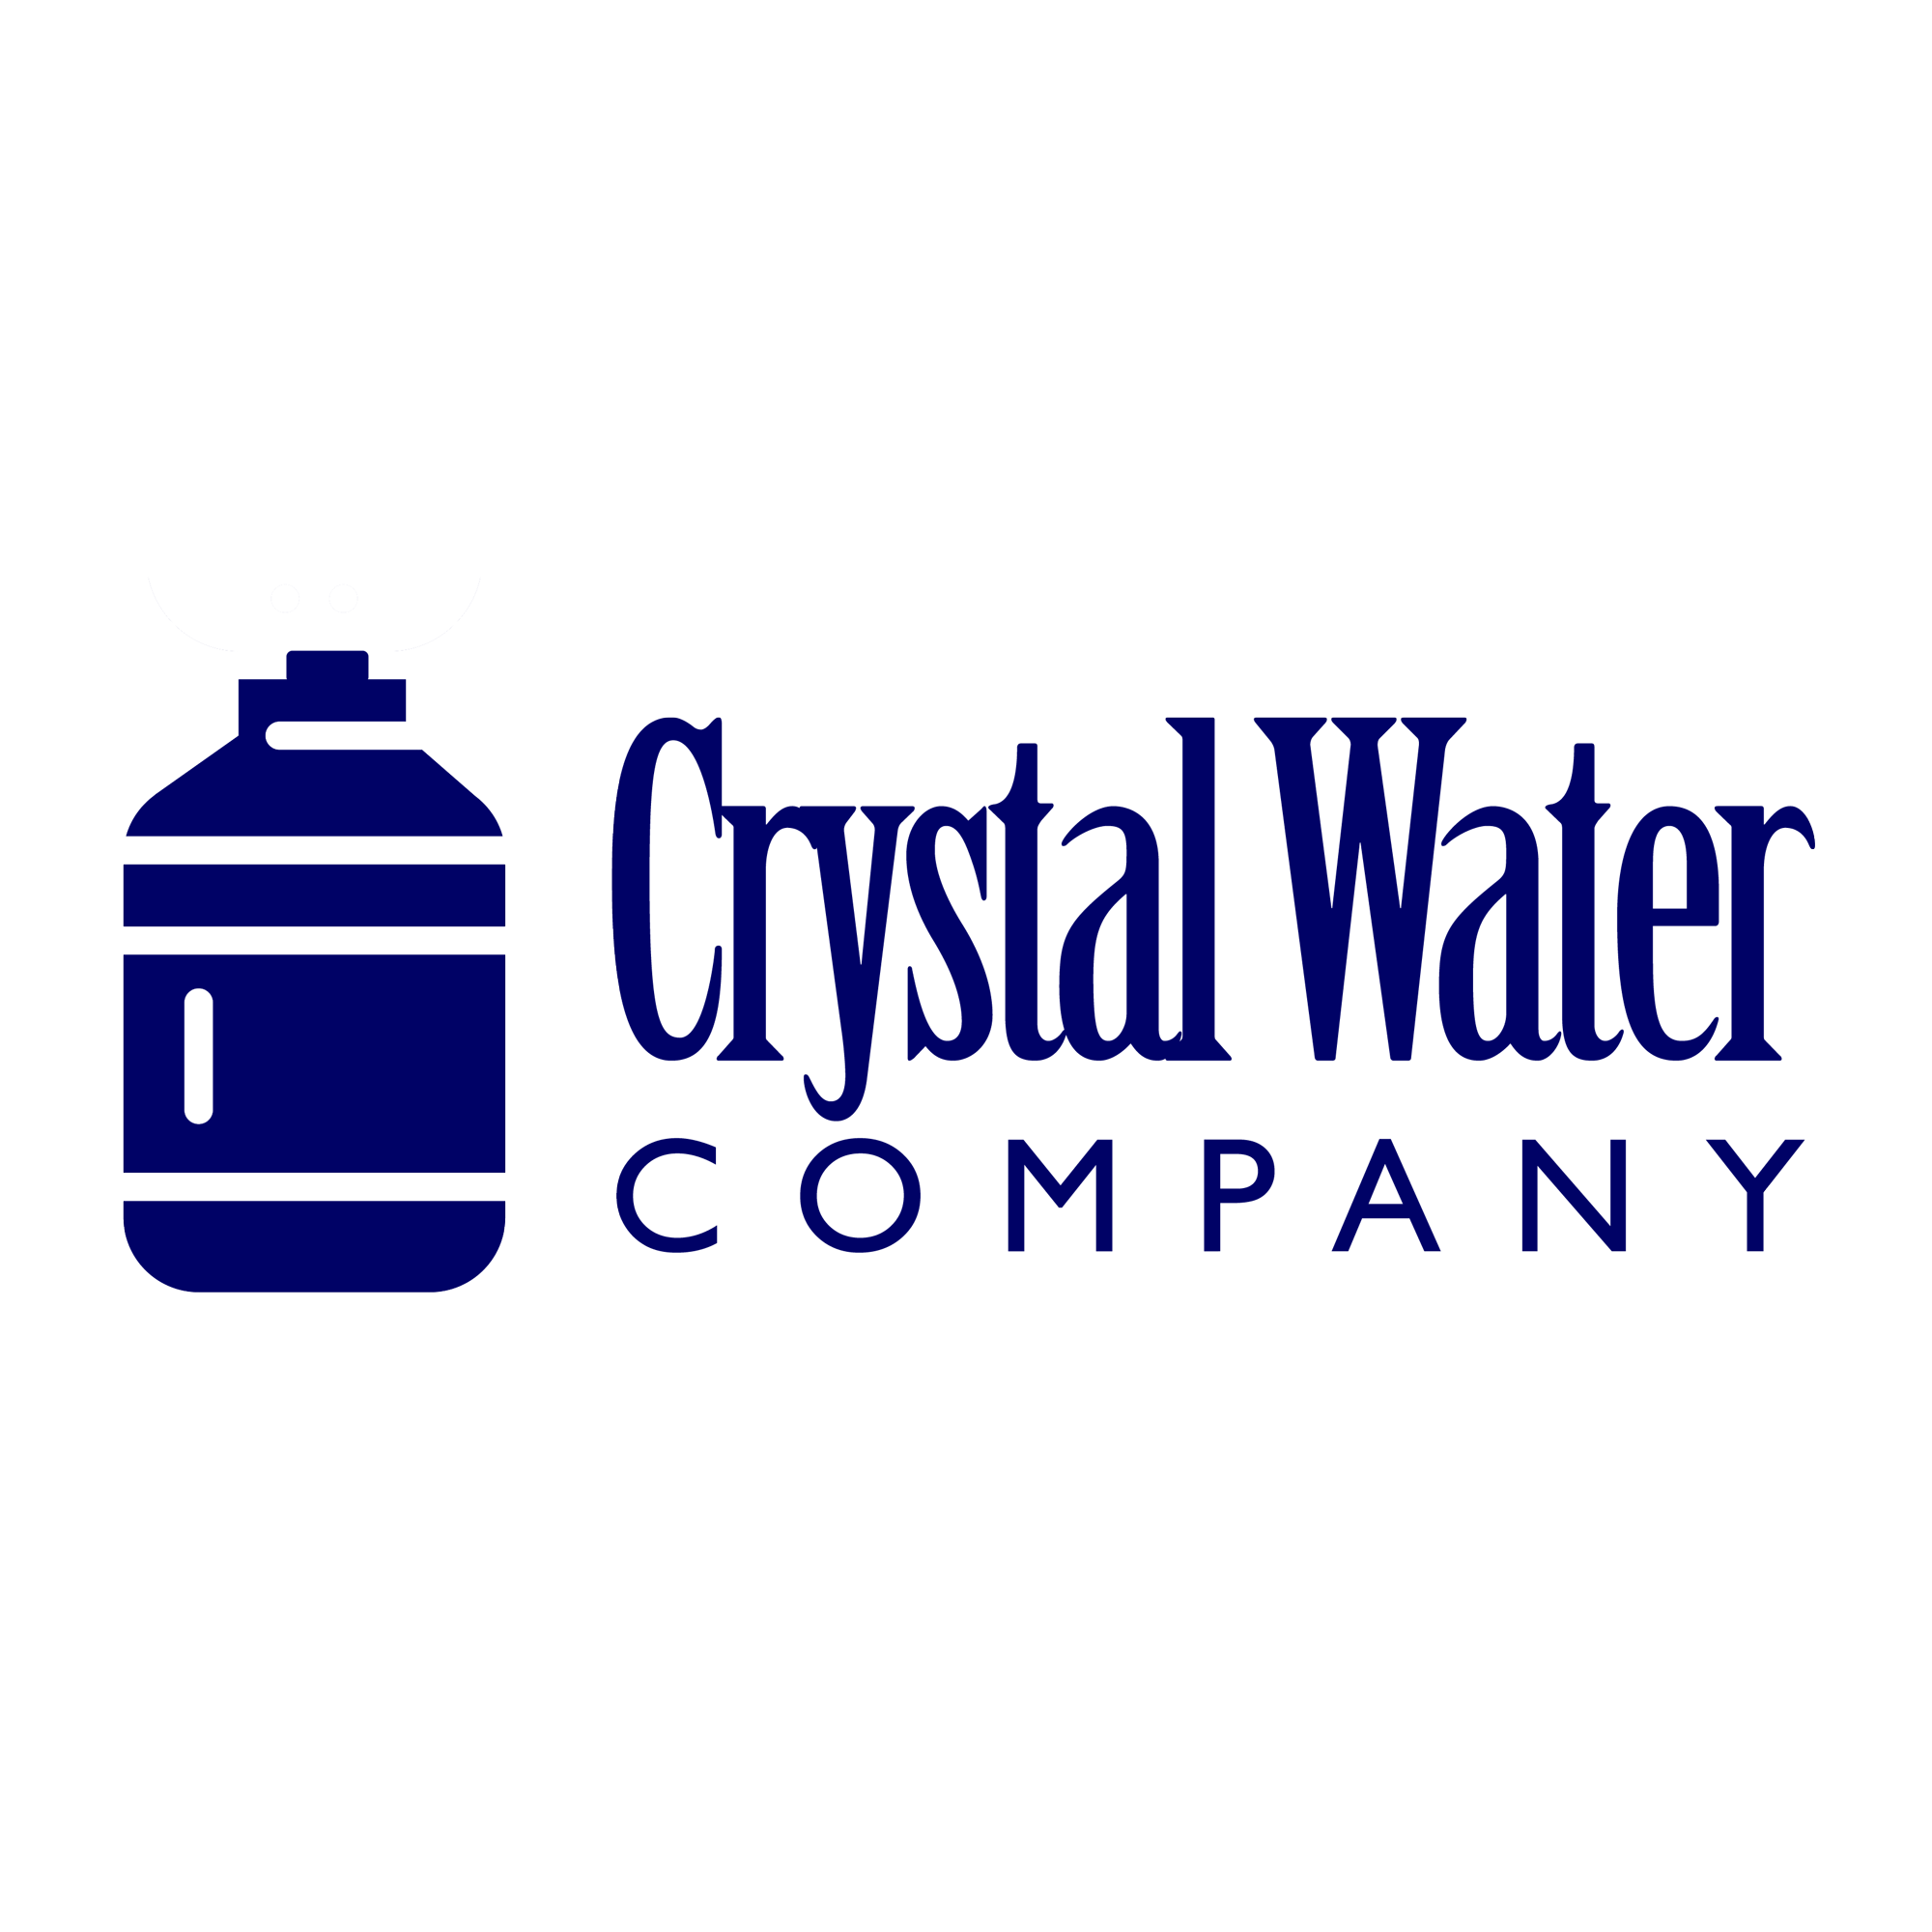 Crystal Water Company - Burton, MI - Office Supply Stores